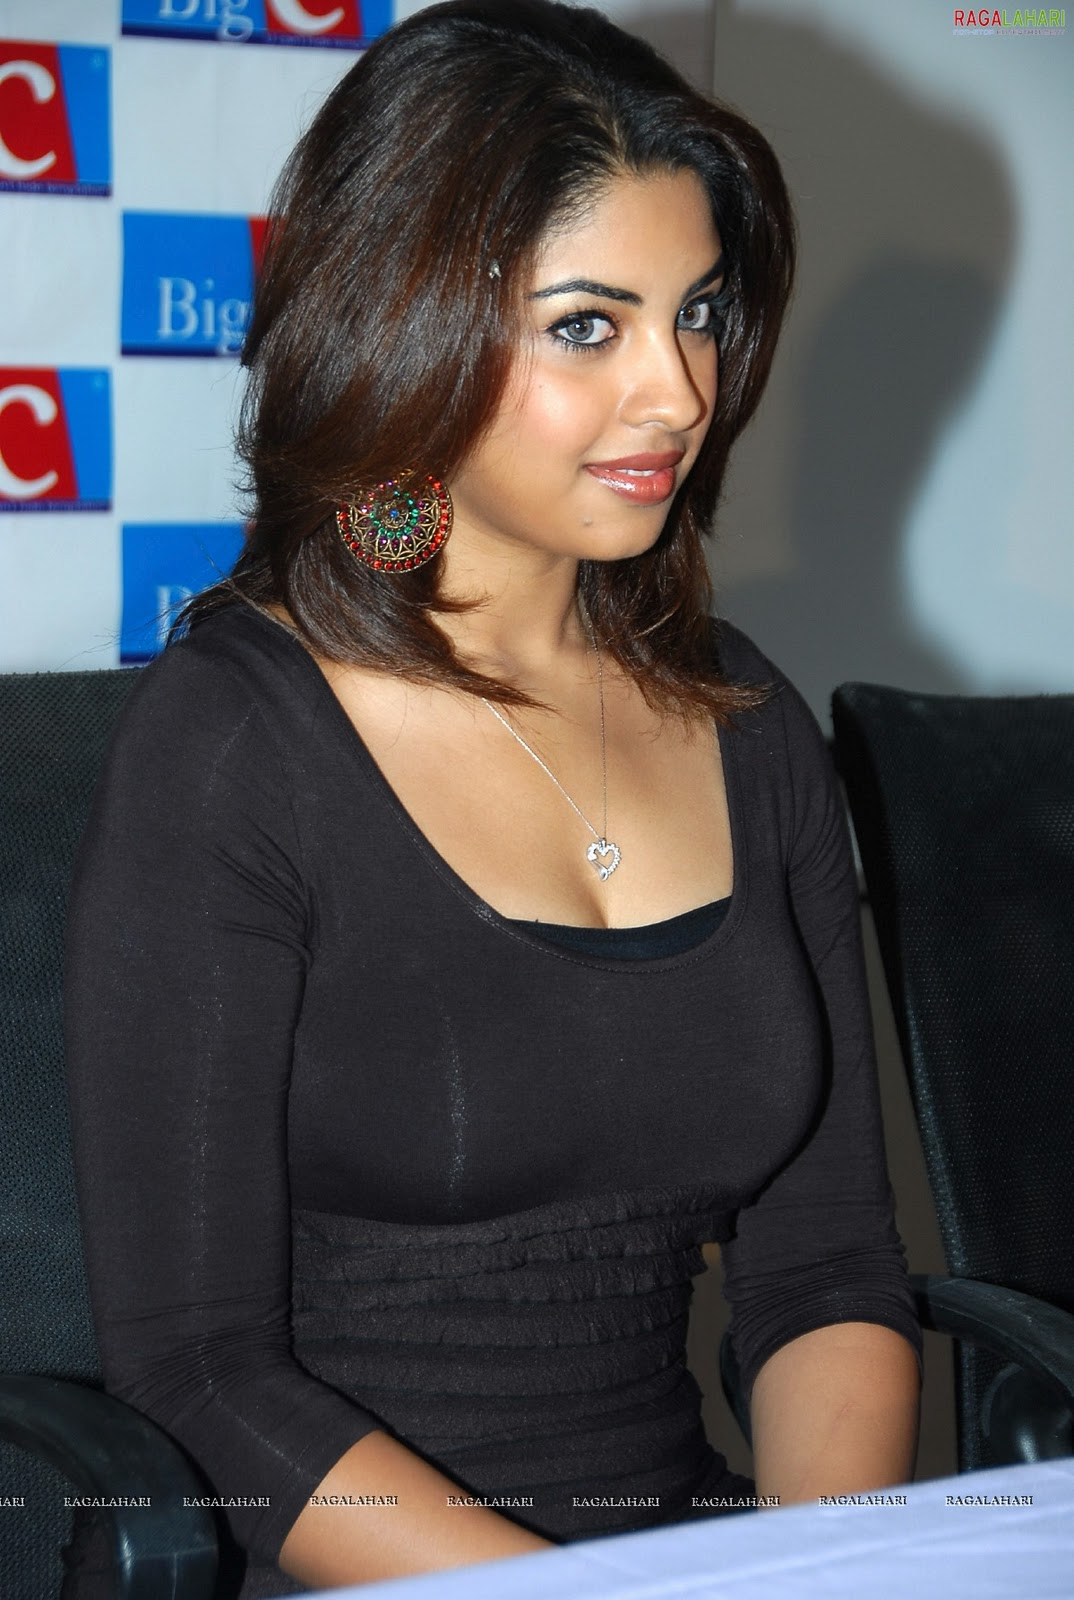 bollywood osthi richa gangopadhyay boobs nipple navel